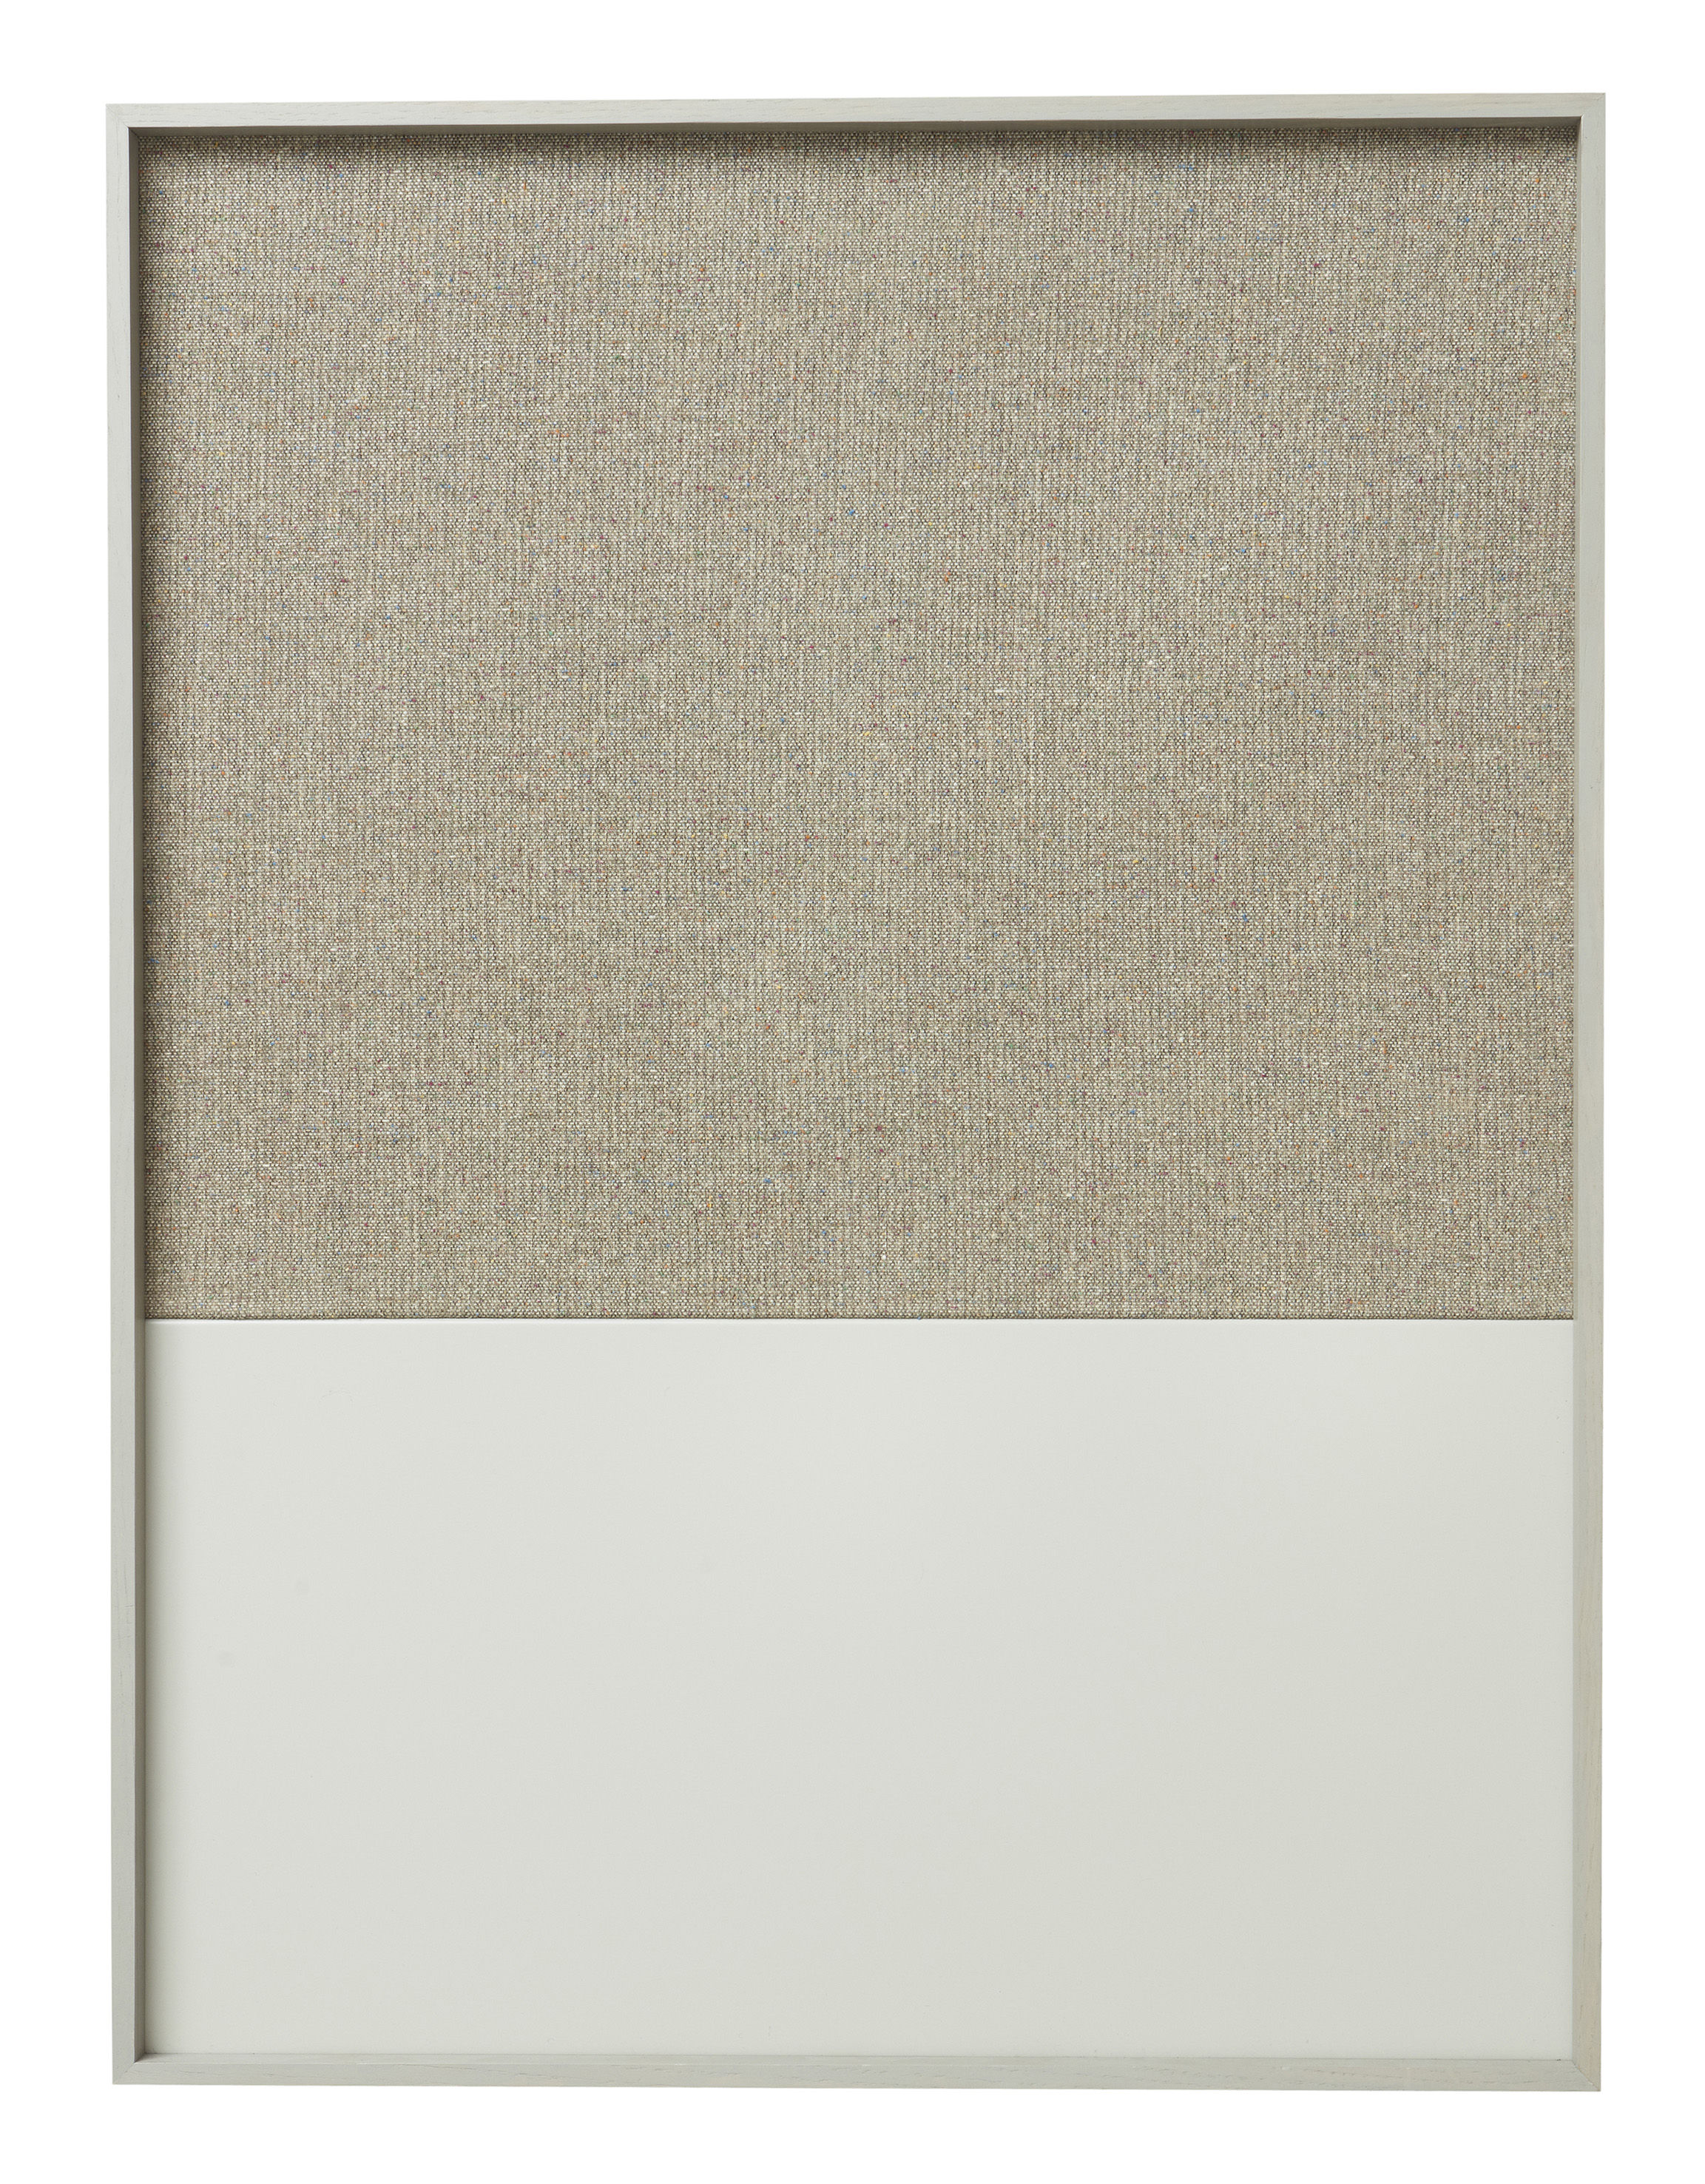 Accessories - Desk & Office Accessories - Frame Pinboard Memo board - 62 x 82 cm by Ferm Living - Grey - Cork, Cotton, Lacquered metal, Oak